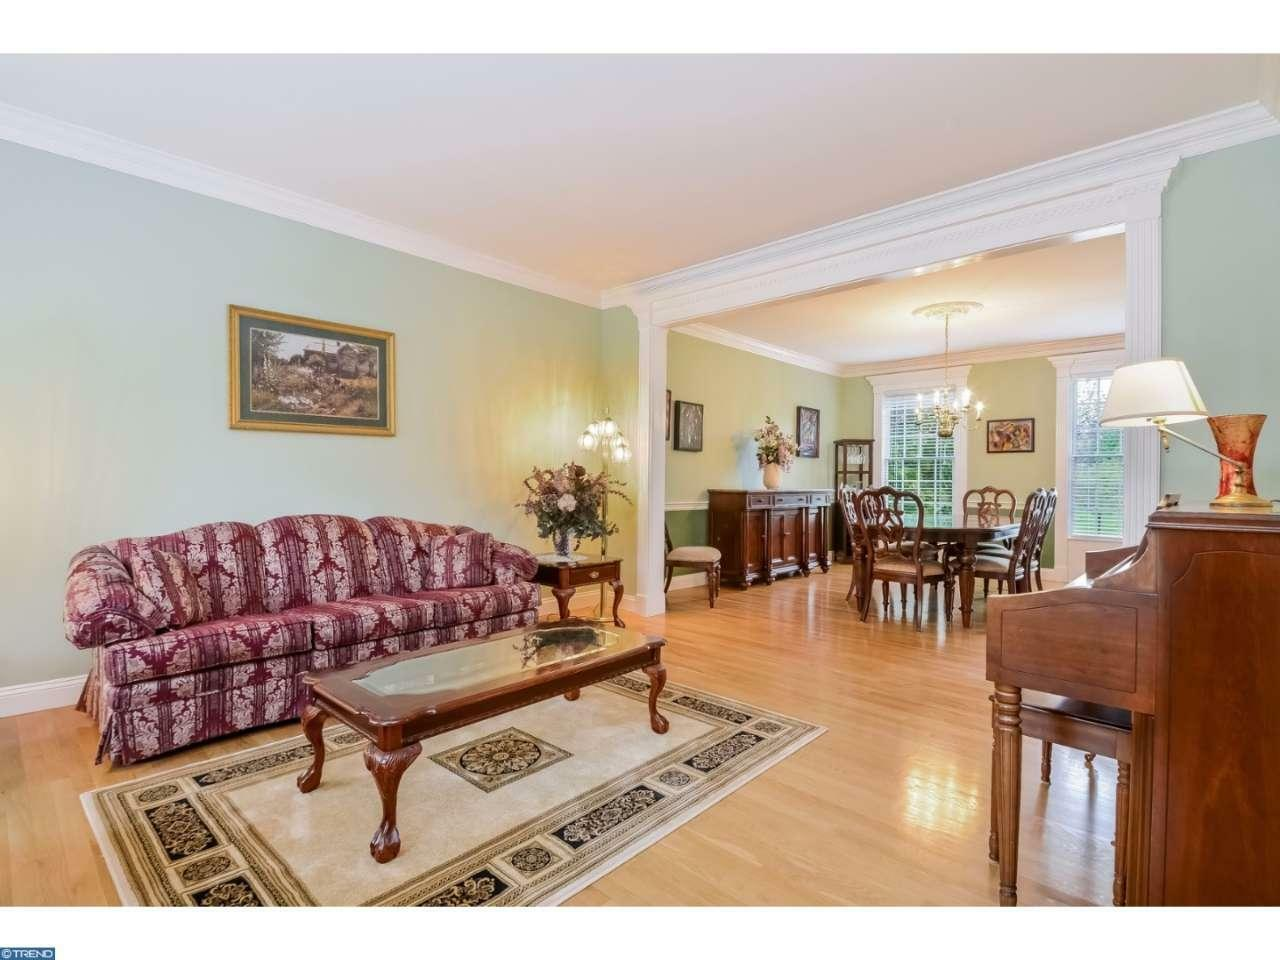 5215 Deborah Ct, Doylestown, PA - USA (photo 5)